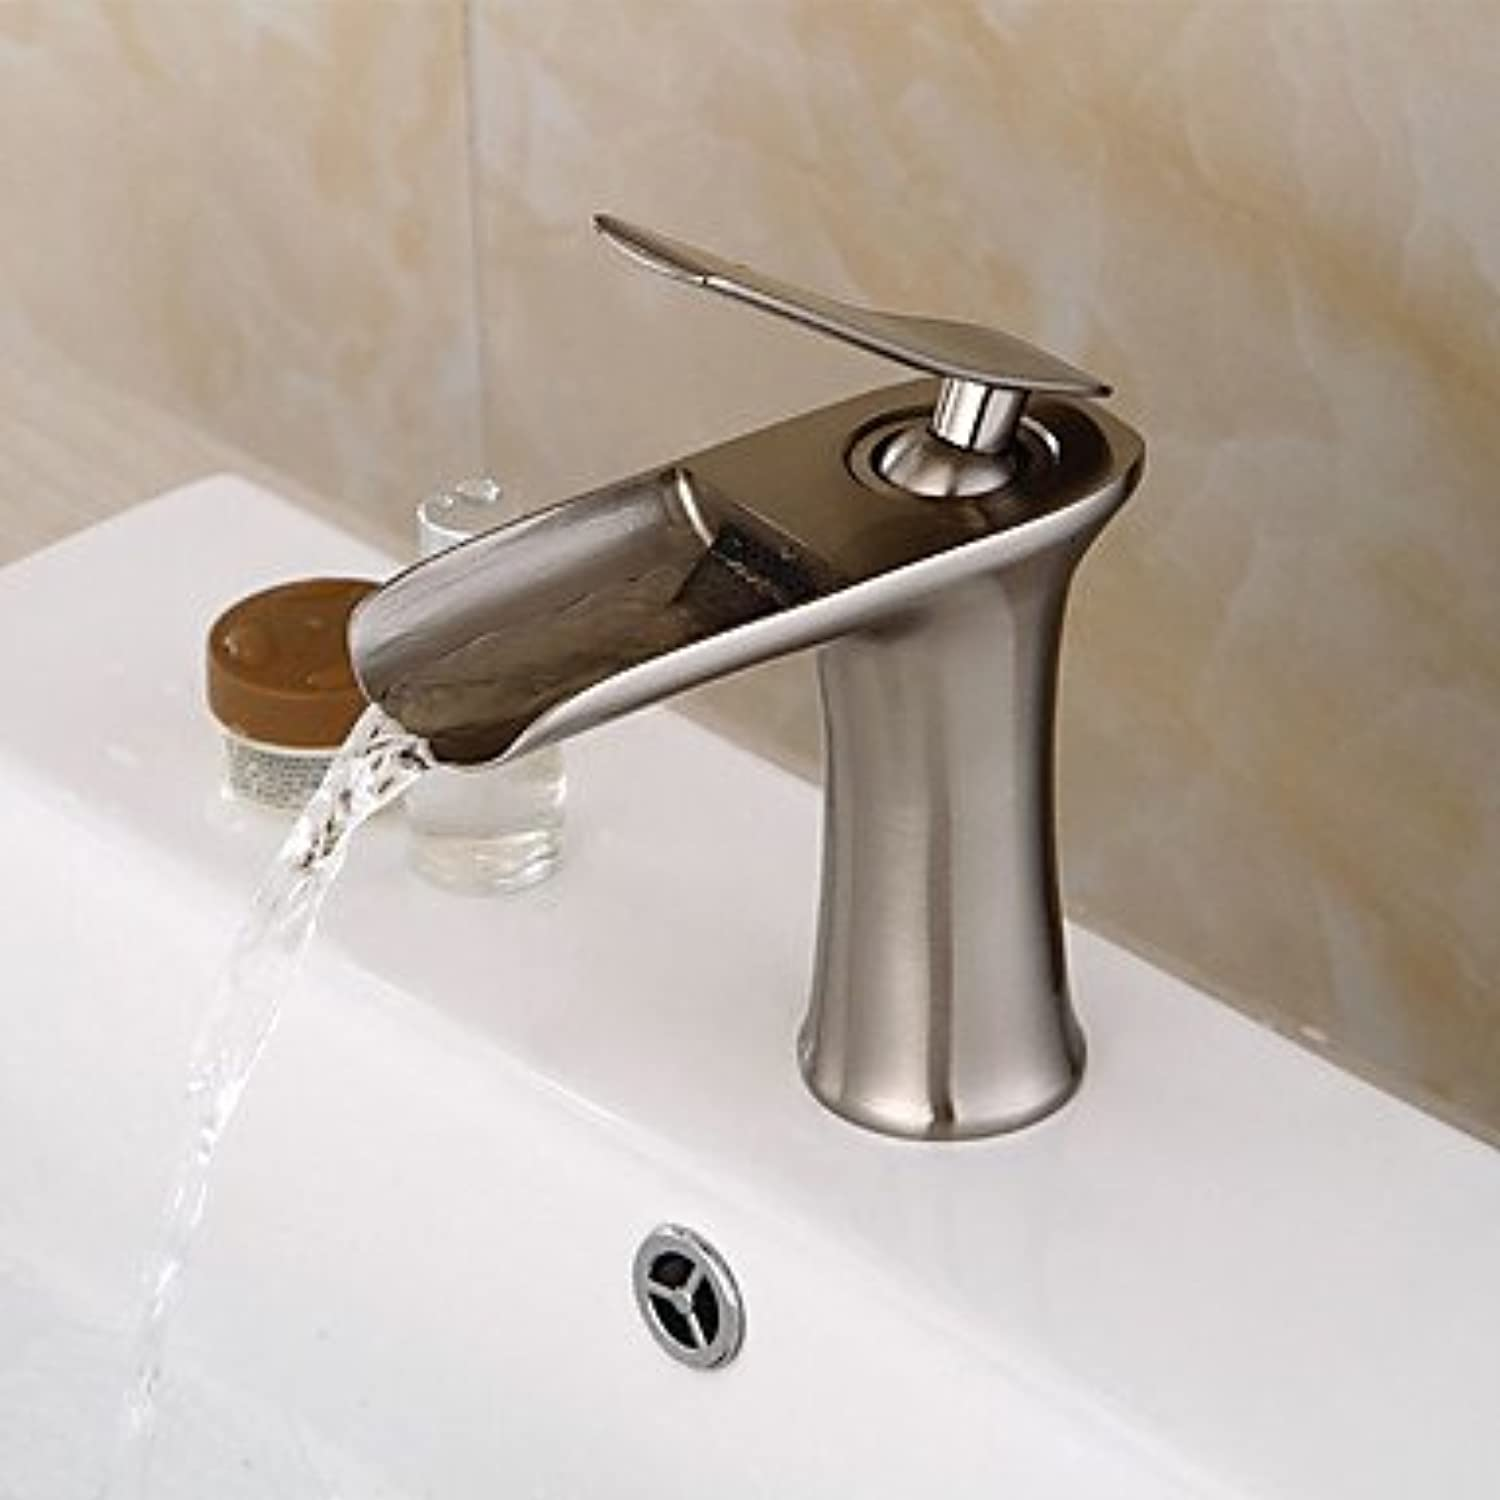 SUNNY KEY-Kitchen Sink Taps@ Vessel Single Handle One Hole in Nickel Brushed Bathroom Sink Faucet